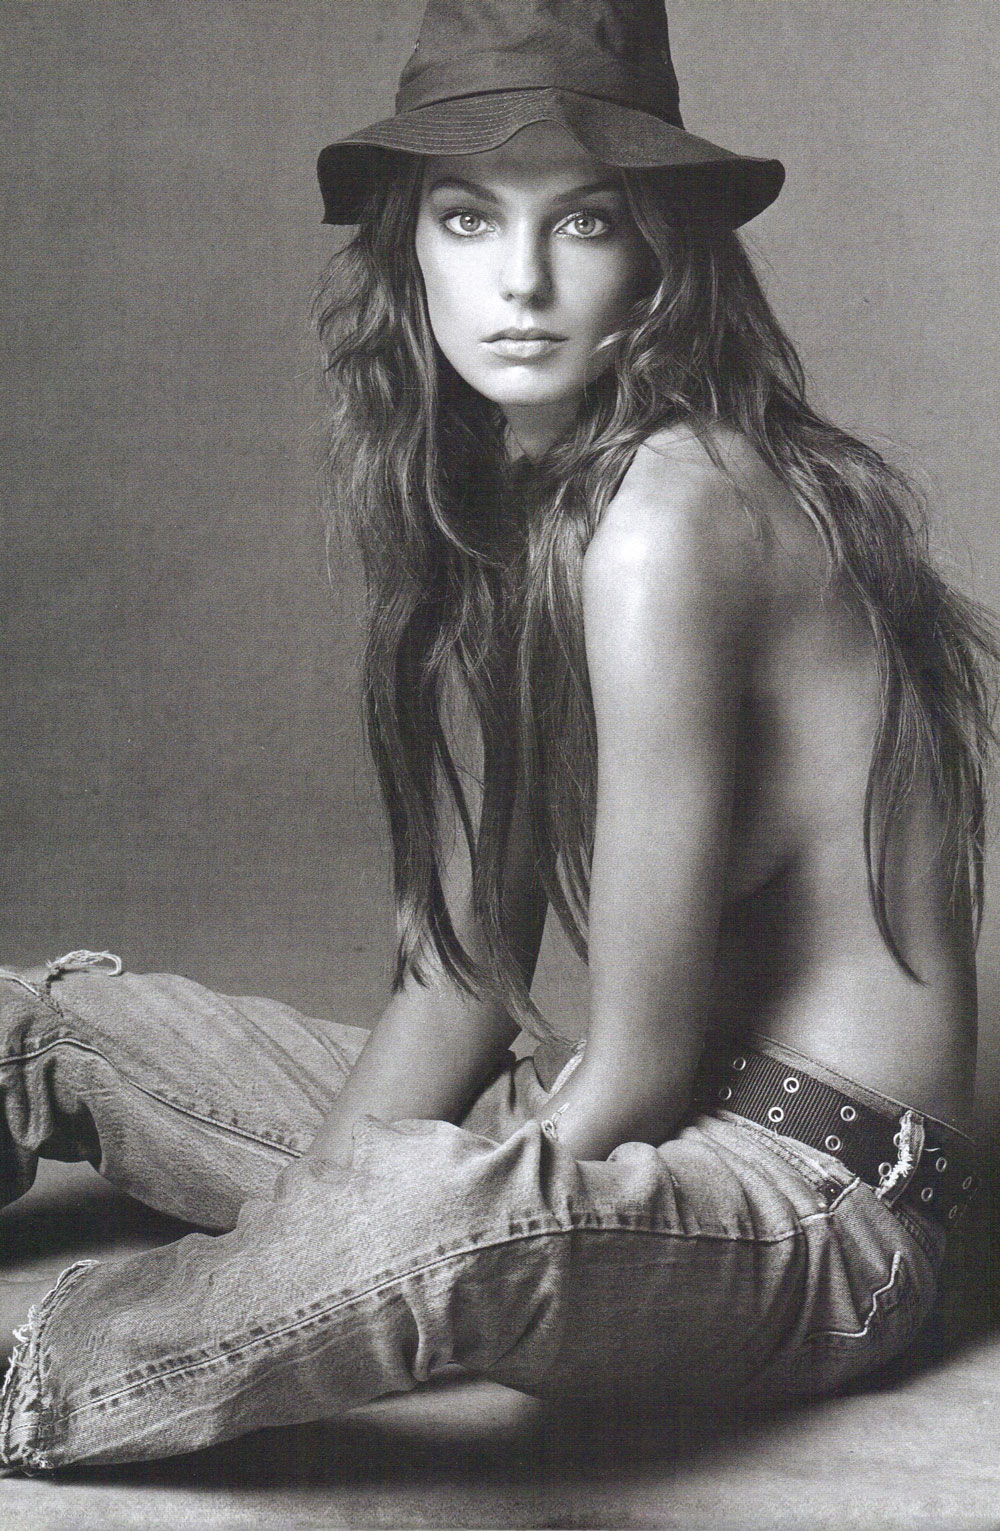 Daria Werbowy in Vogue Italia May 2004 (photography: Steven Meisel)